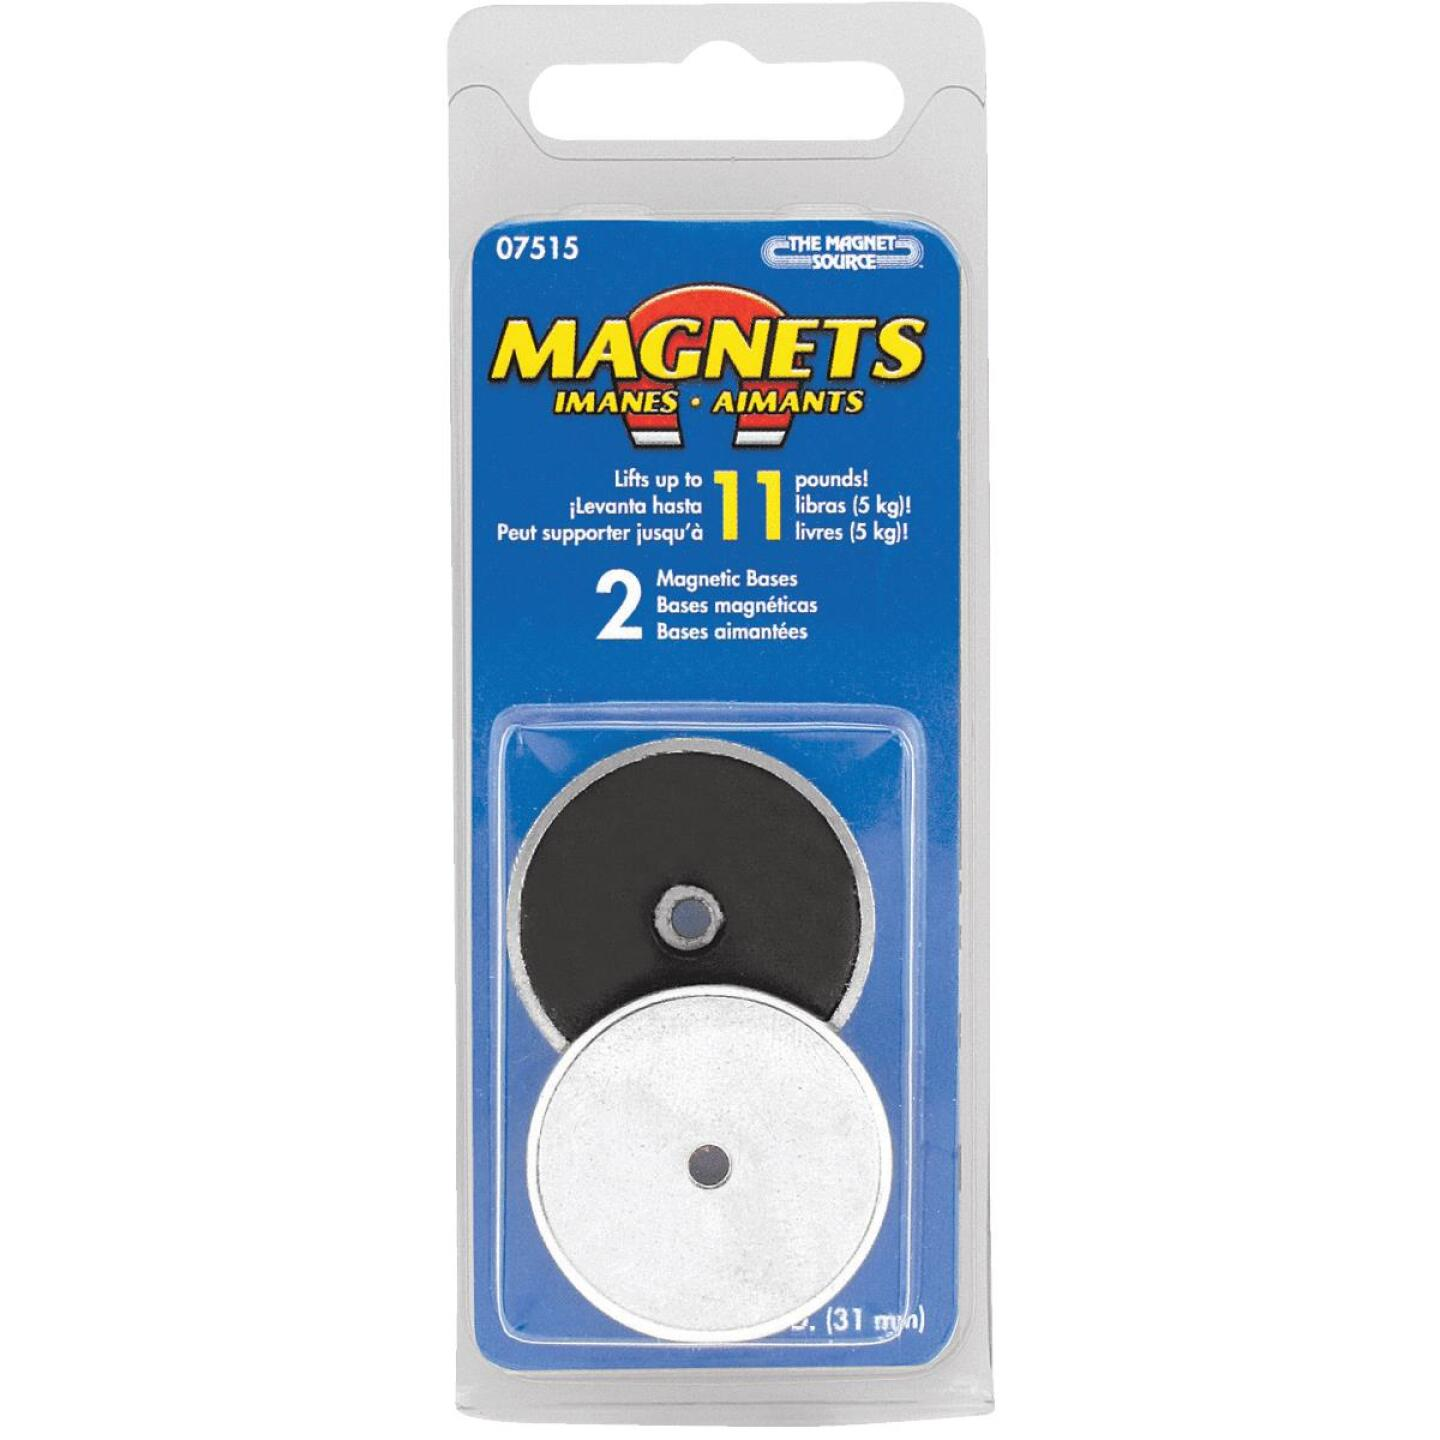 Master Magnetics 1-3/16 in. 4 Lb. Magnetic Base Image 2